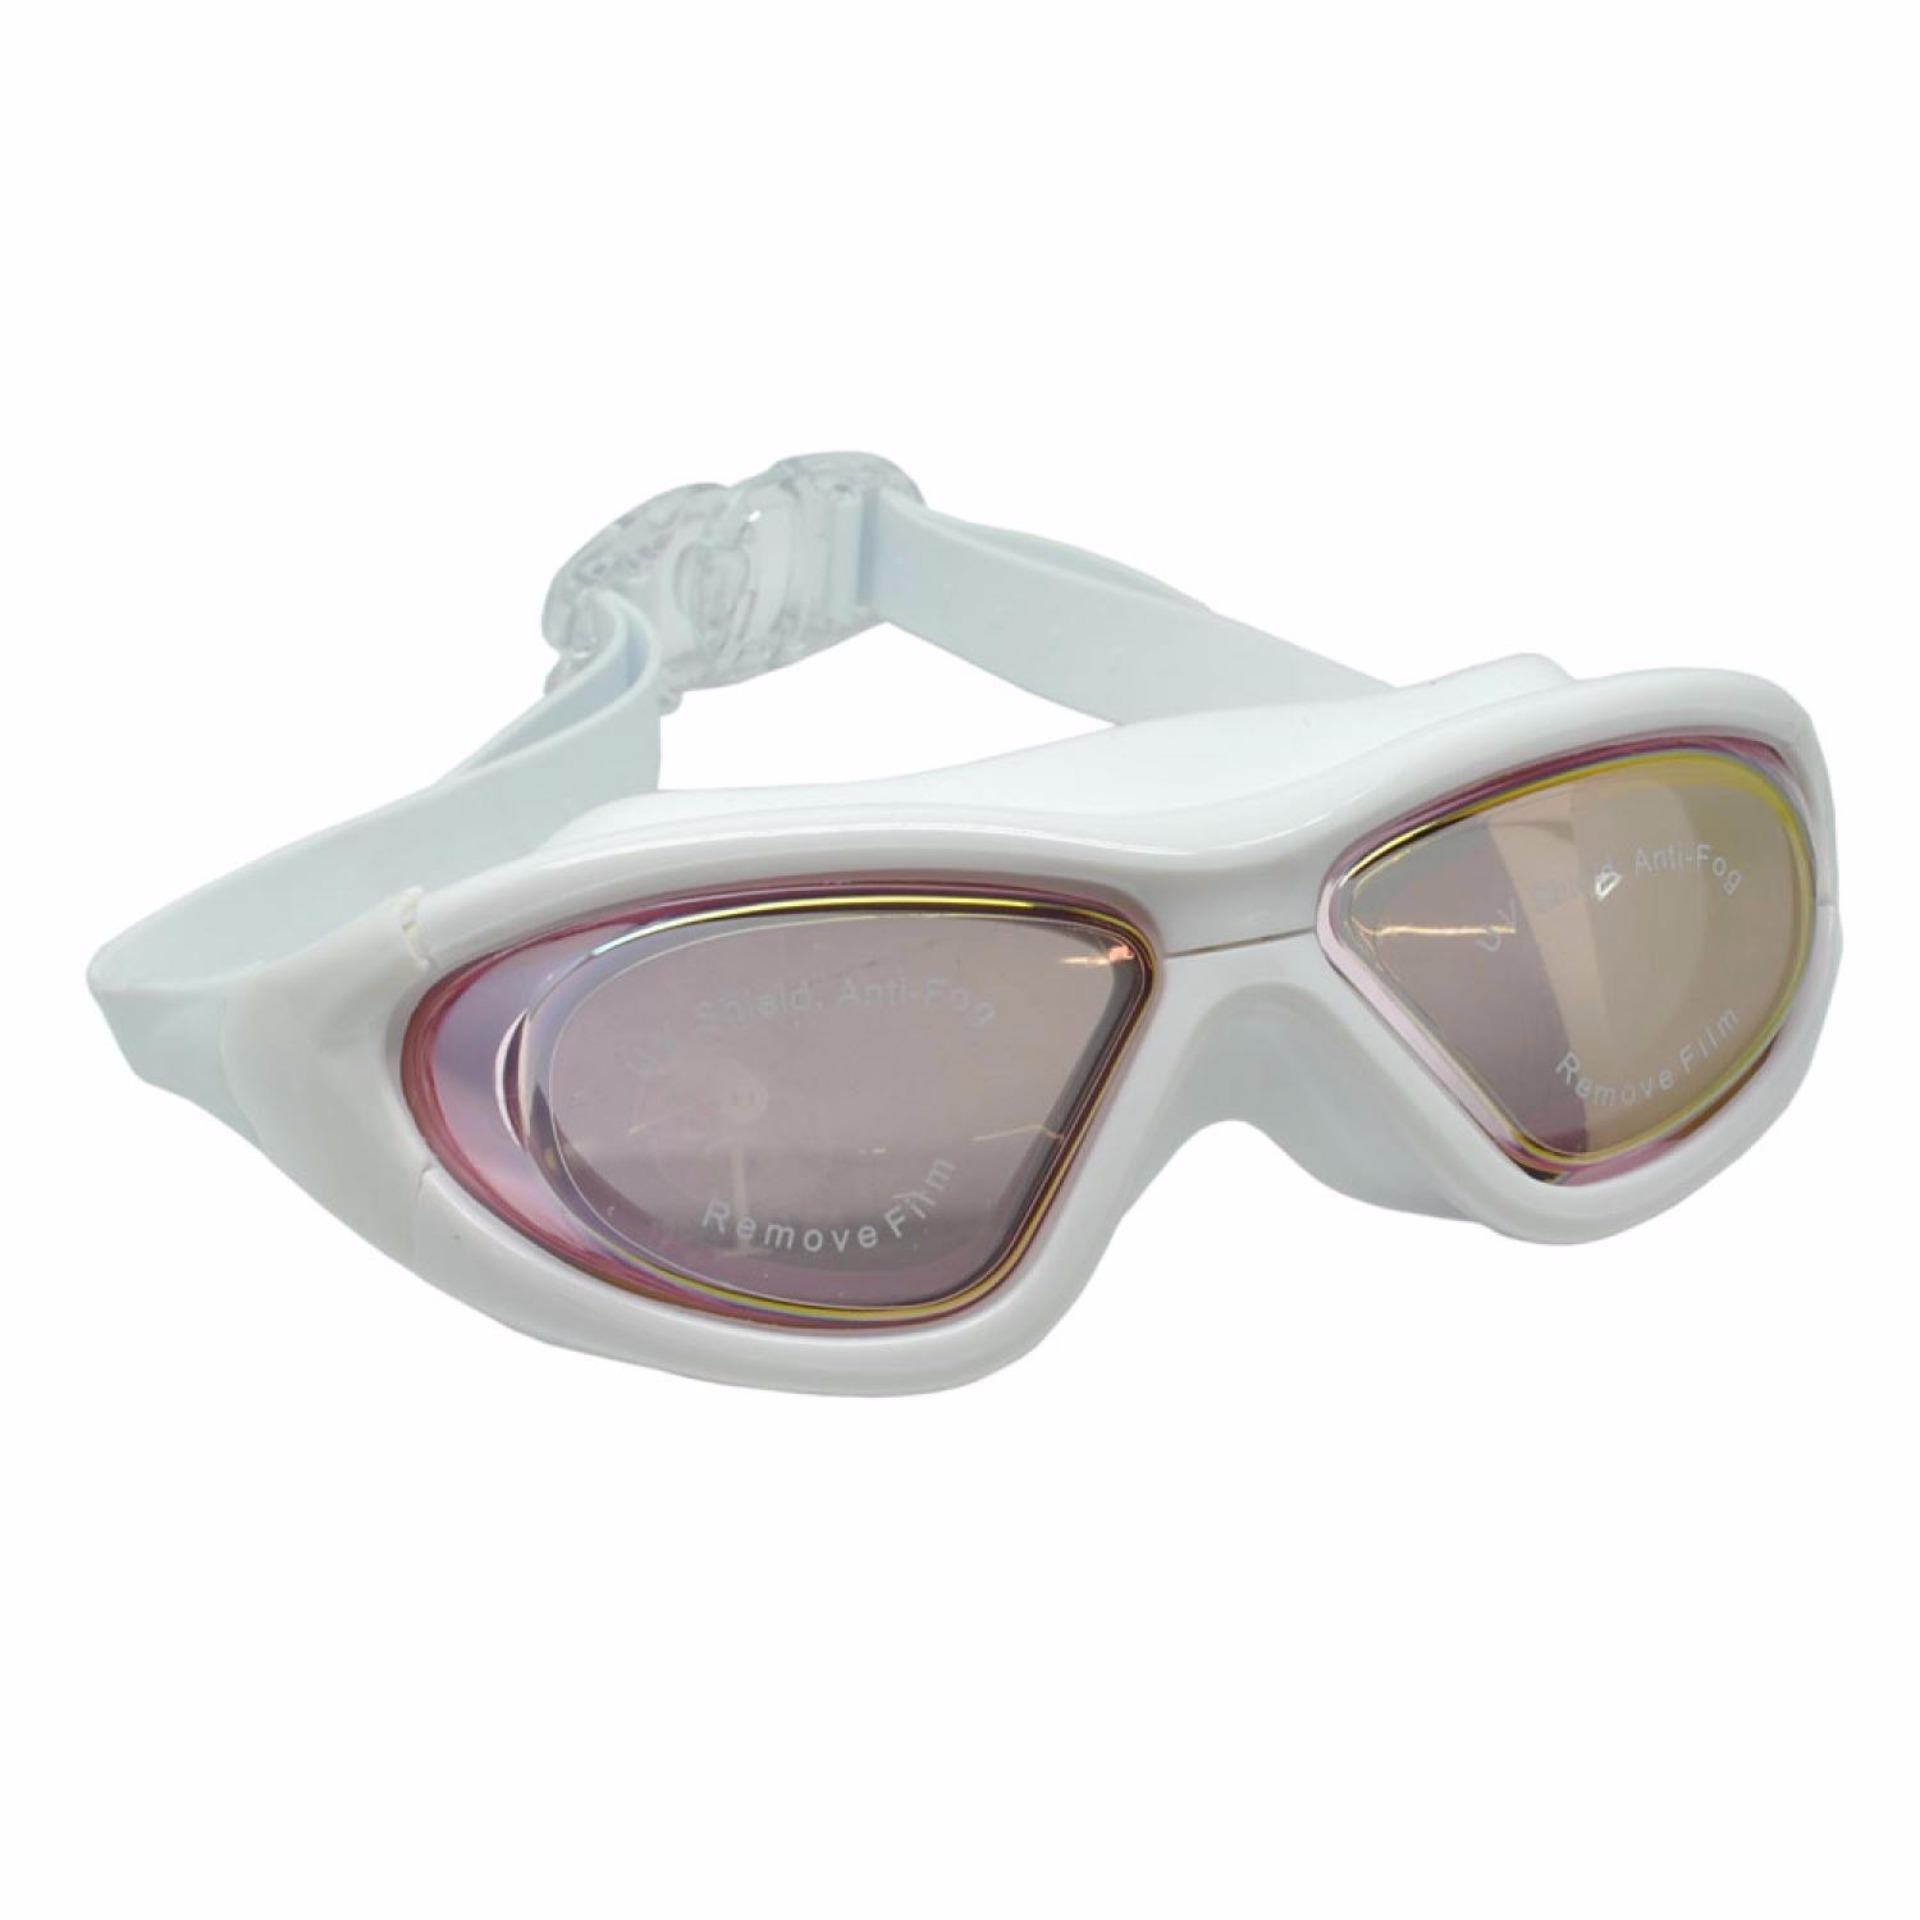 Kacamata Renang Dewasa Big Frame Anti Fog UV Protection Swimming goggles Adult Ruihe .